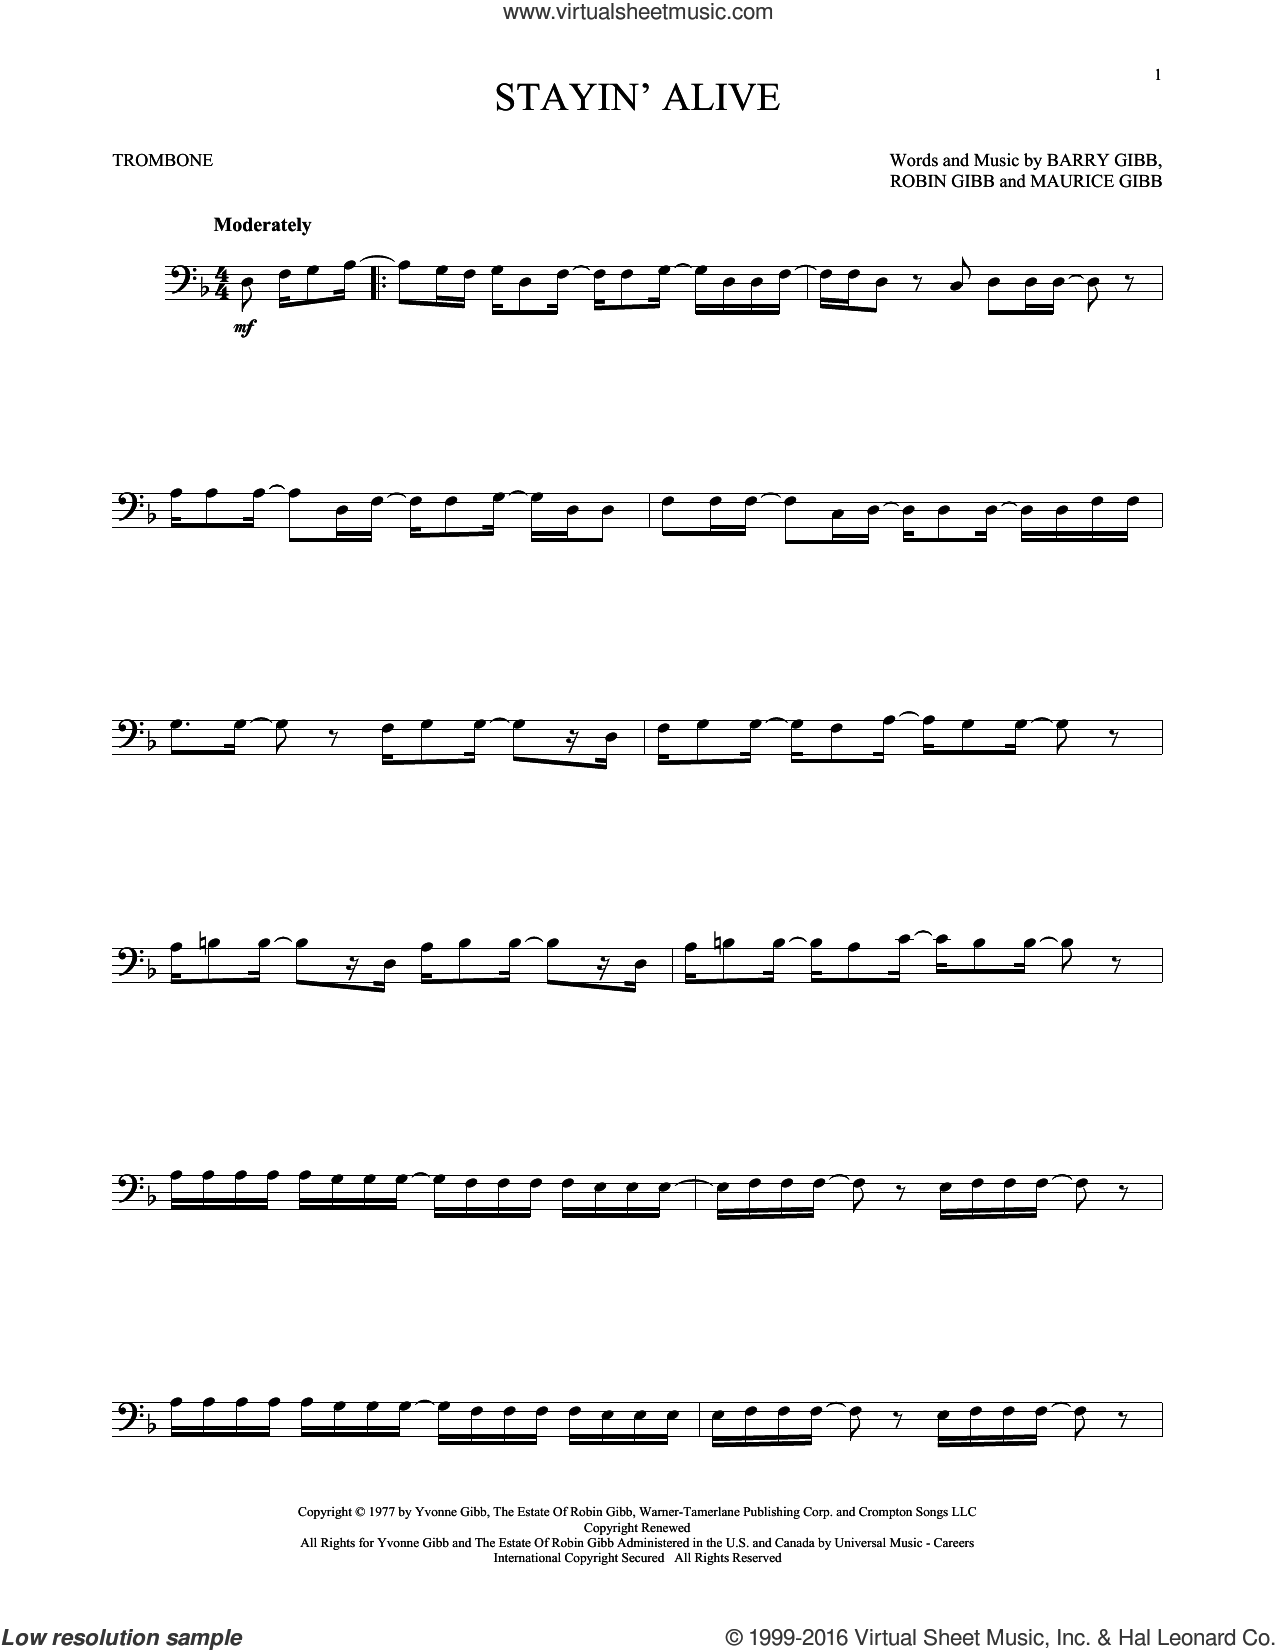 Stayin' Alive sheet music for trombone solo by Barry Gibb, Bee Gees, Maurice Gibb and Robin Gibb, intermediate trombone. Score Image Preview.